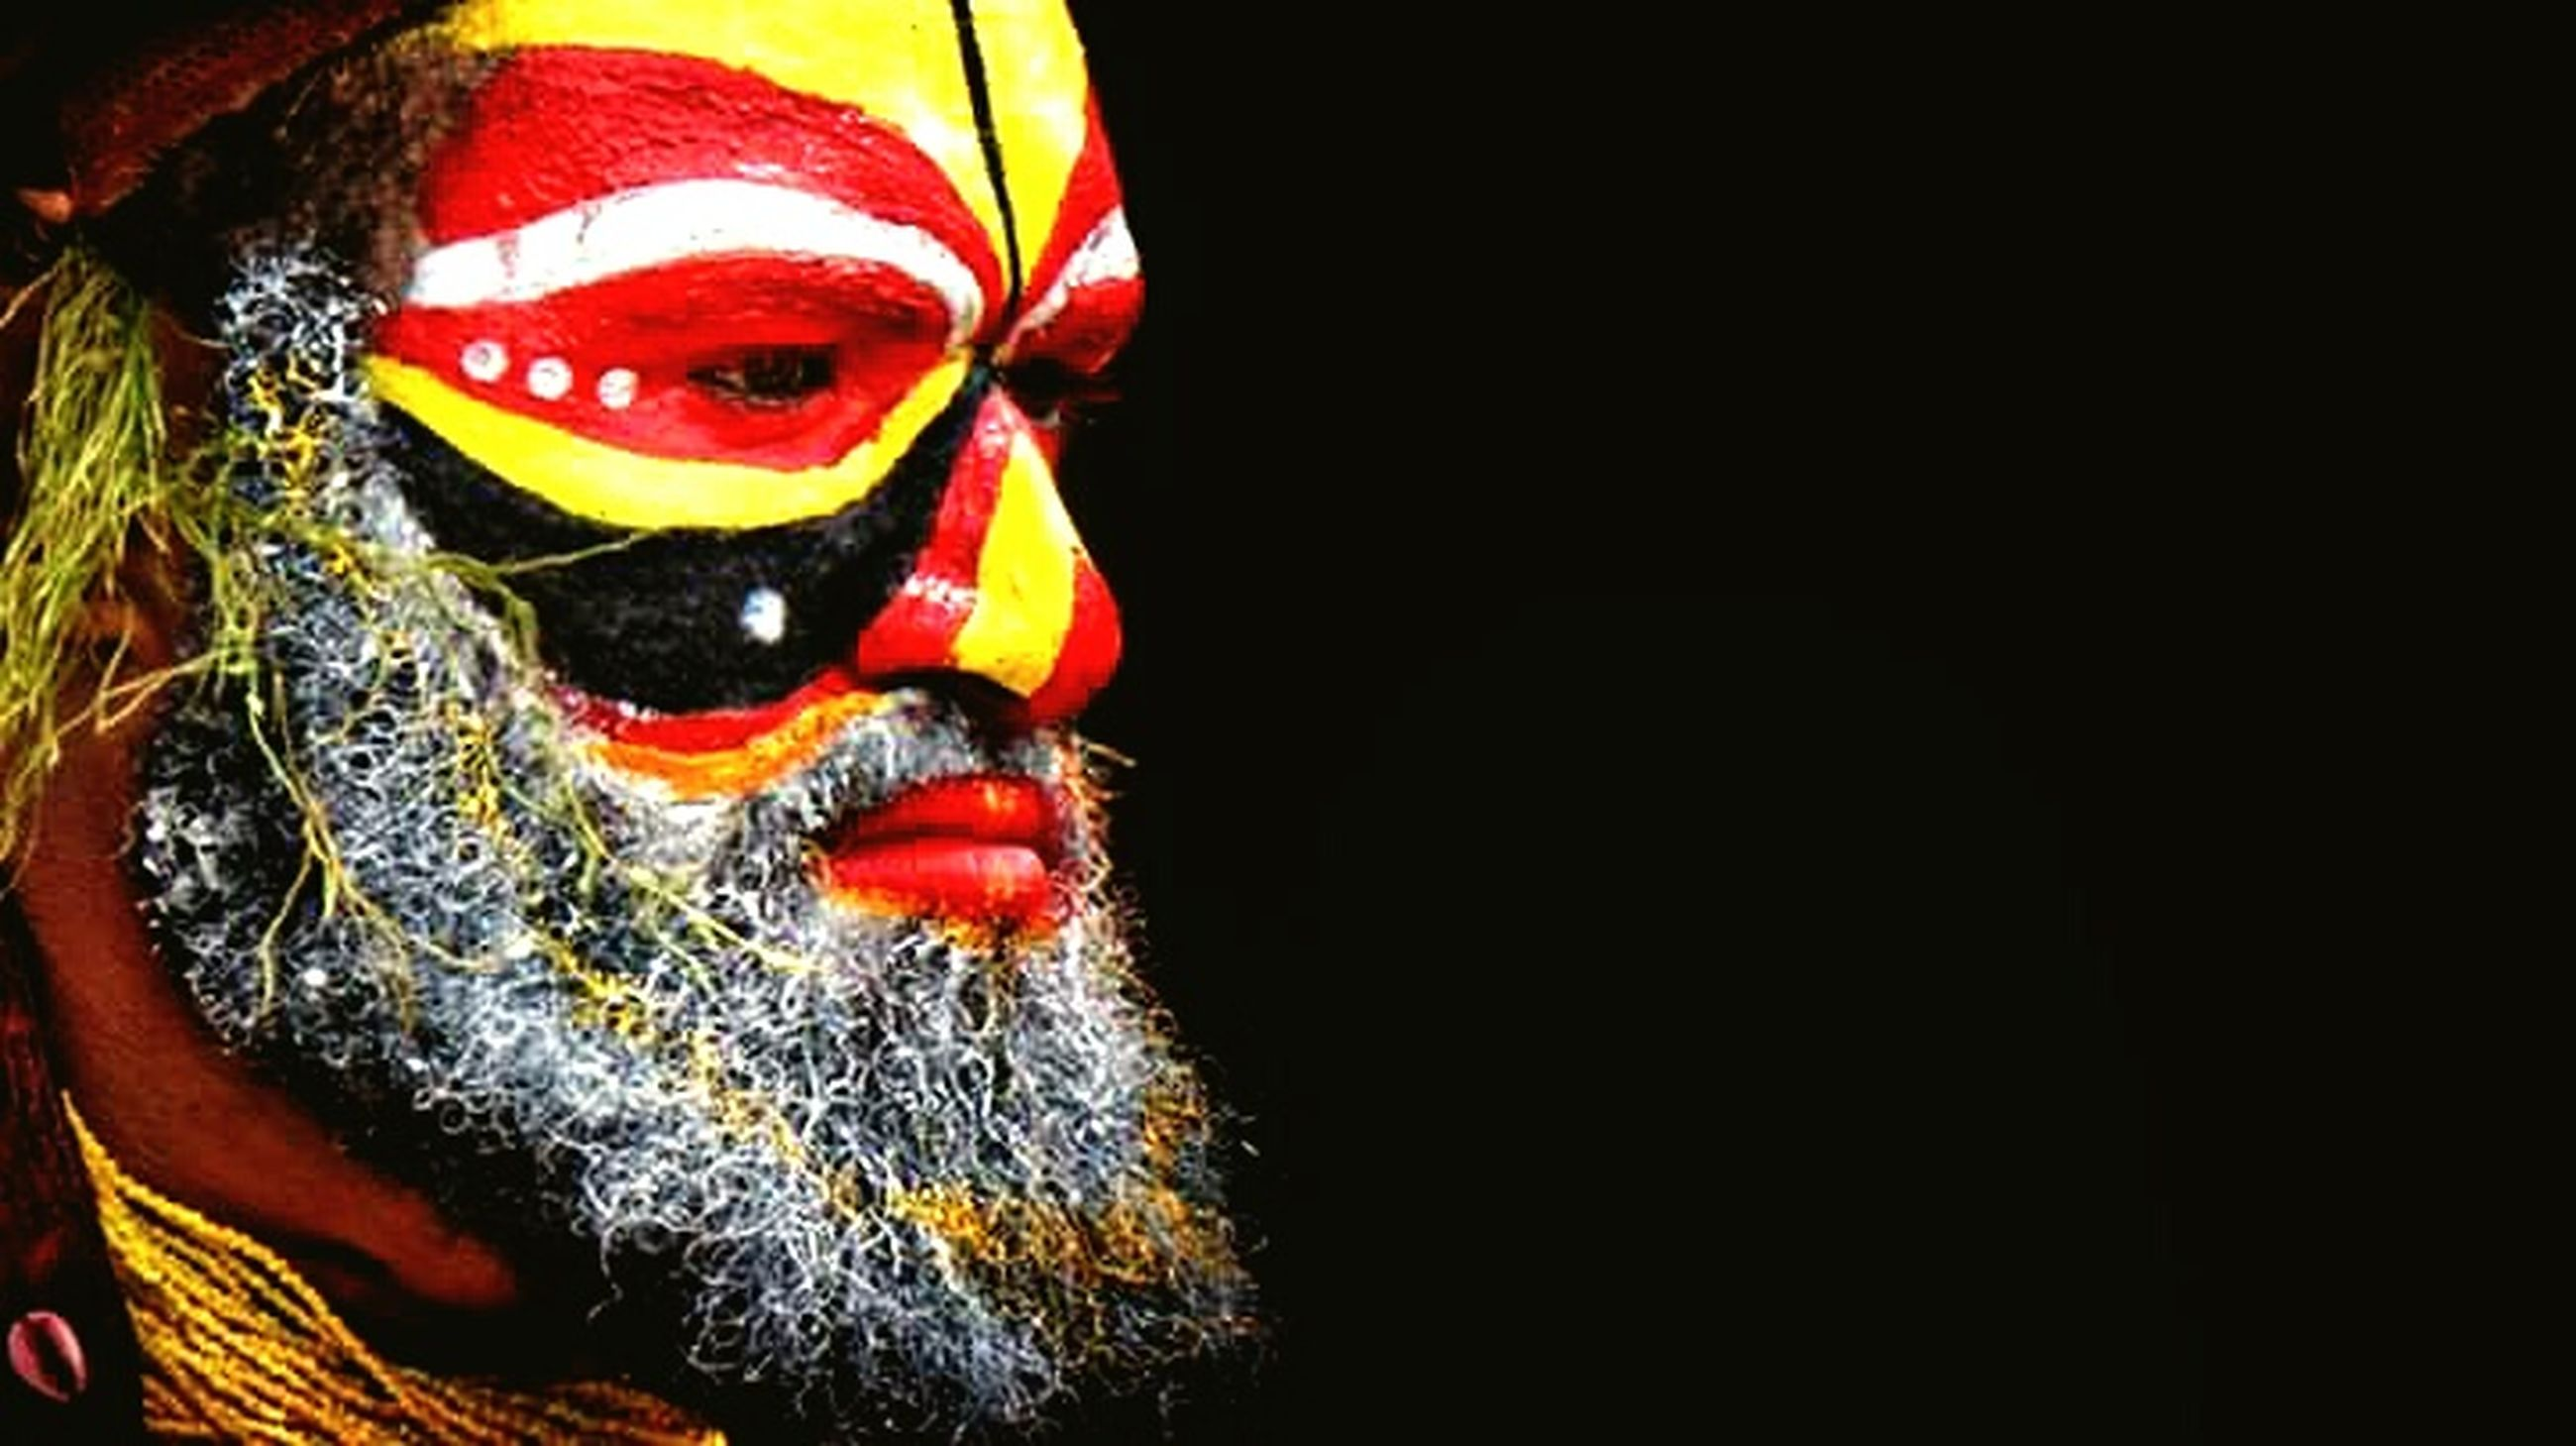 headshot, copy space, celebration, portrait, one person, face paint, multi colored, paint, indoors, black background, close-up, studio shot, traditional clothing, creativity, costume, arts culture and entertainment, clothing, human face